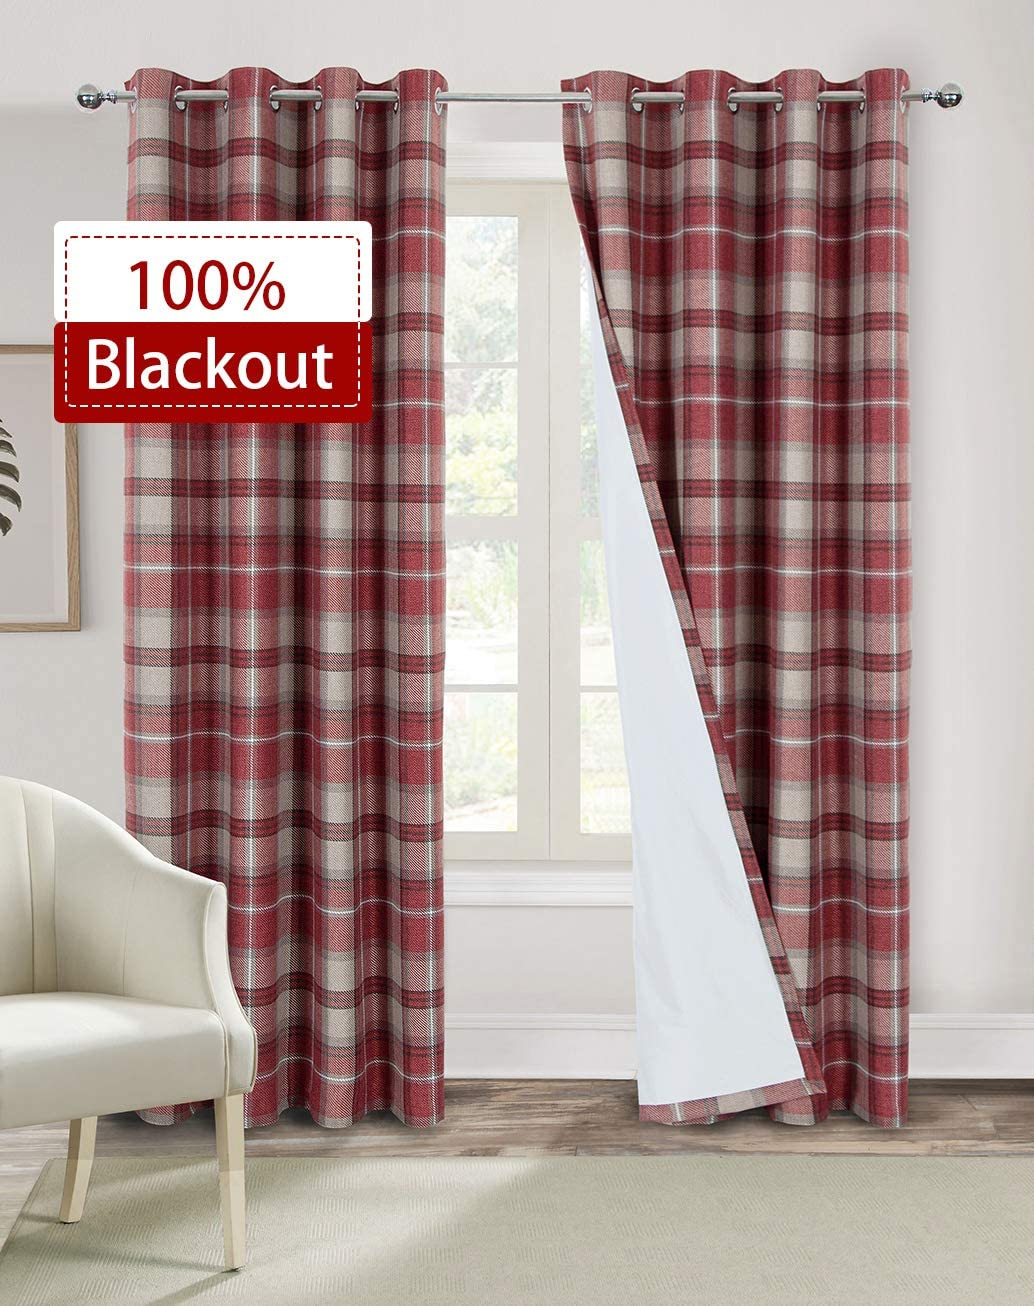 Alexandra Cole Red Plaid Curtains 95 Inches Length Blackout Curtains for Bedroom Check Farmhouse Living Room Curtains 2 Panels